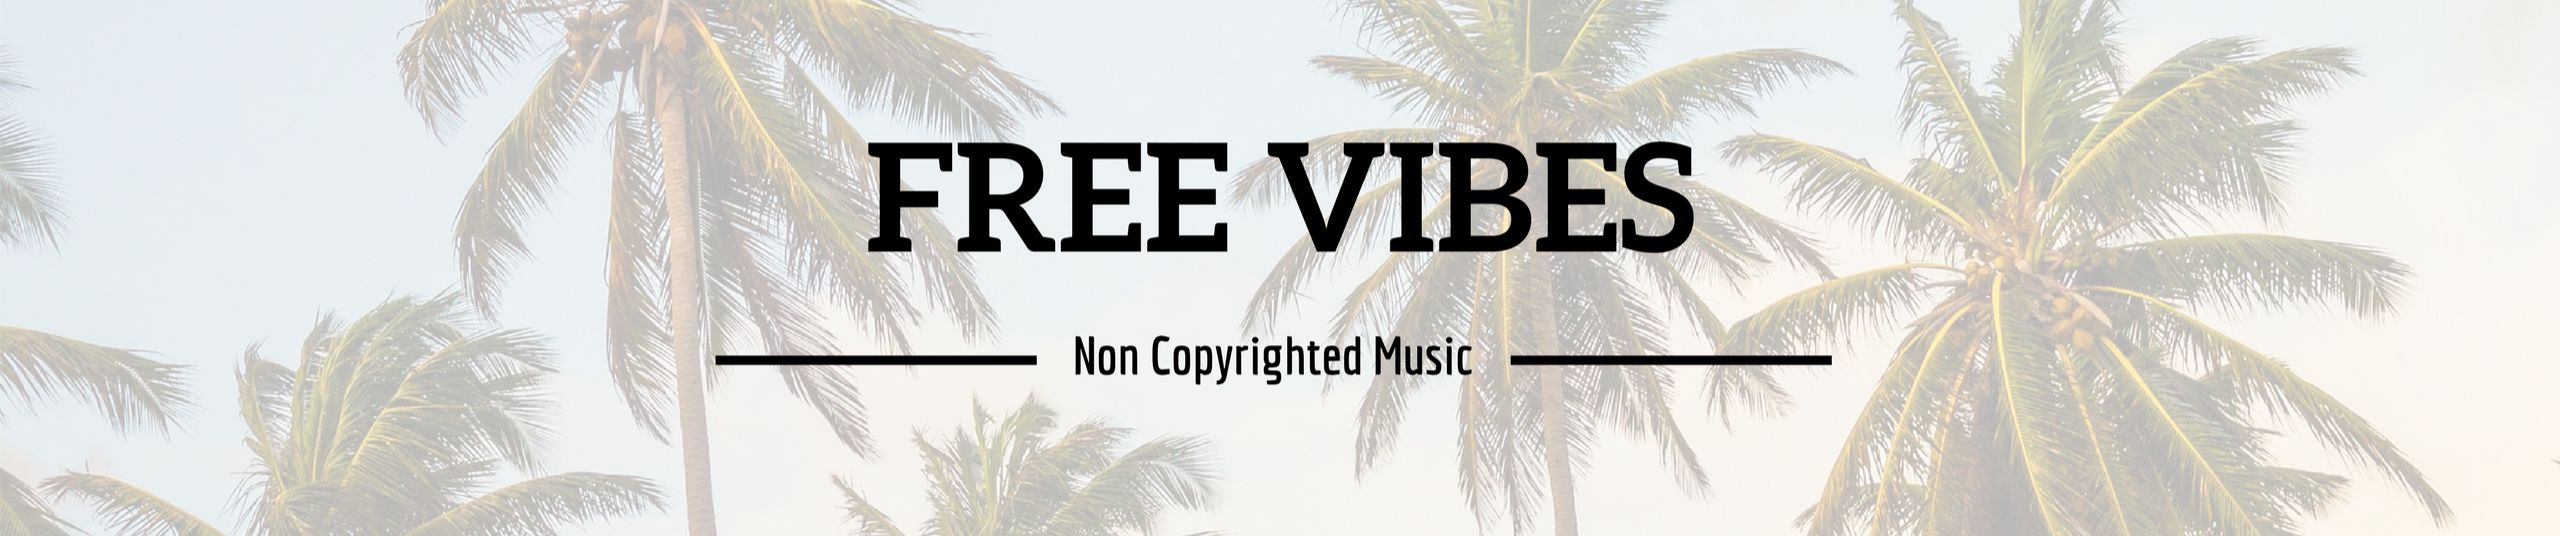 Free Vibes - Non Copyright Music | Free Listening on SoundCloud